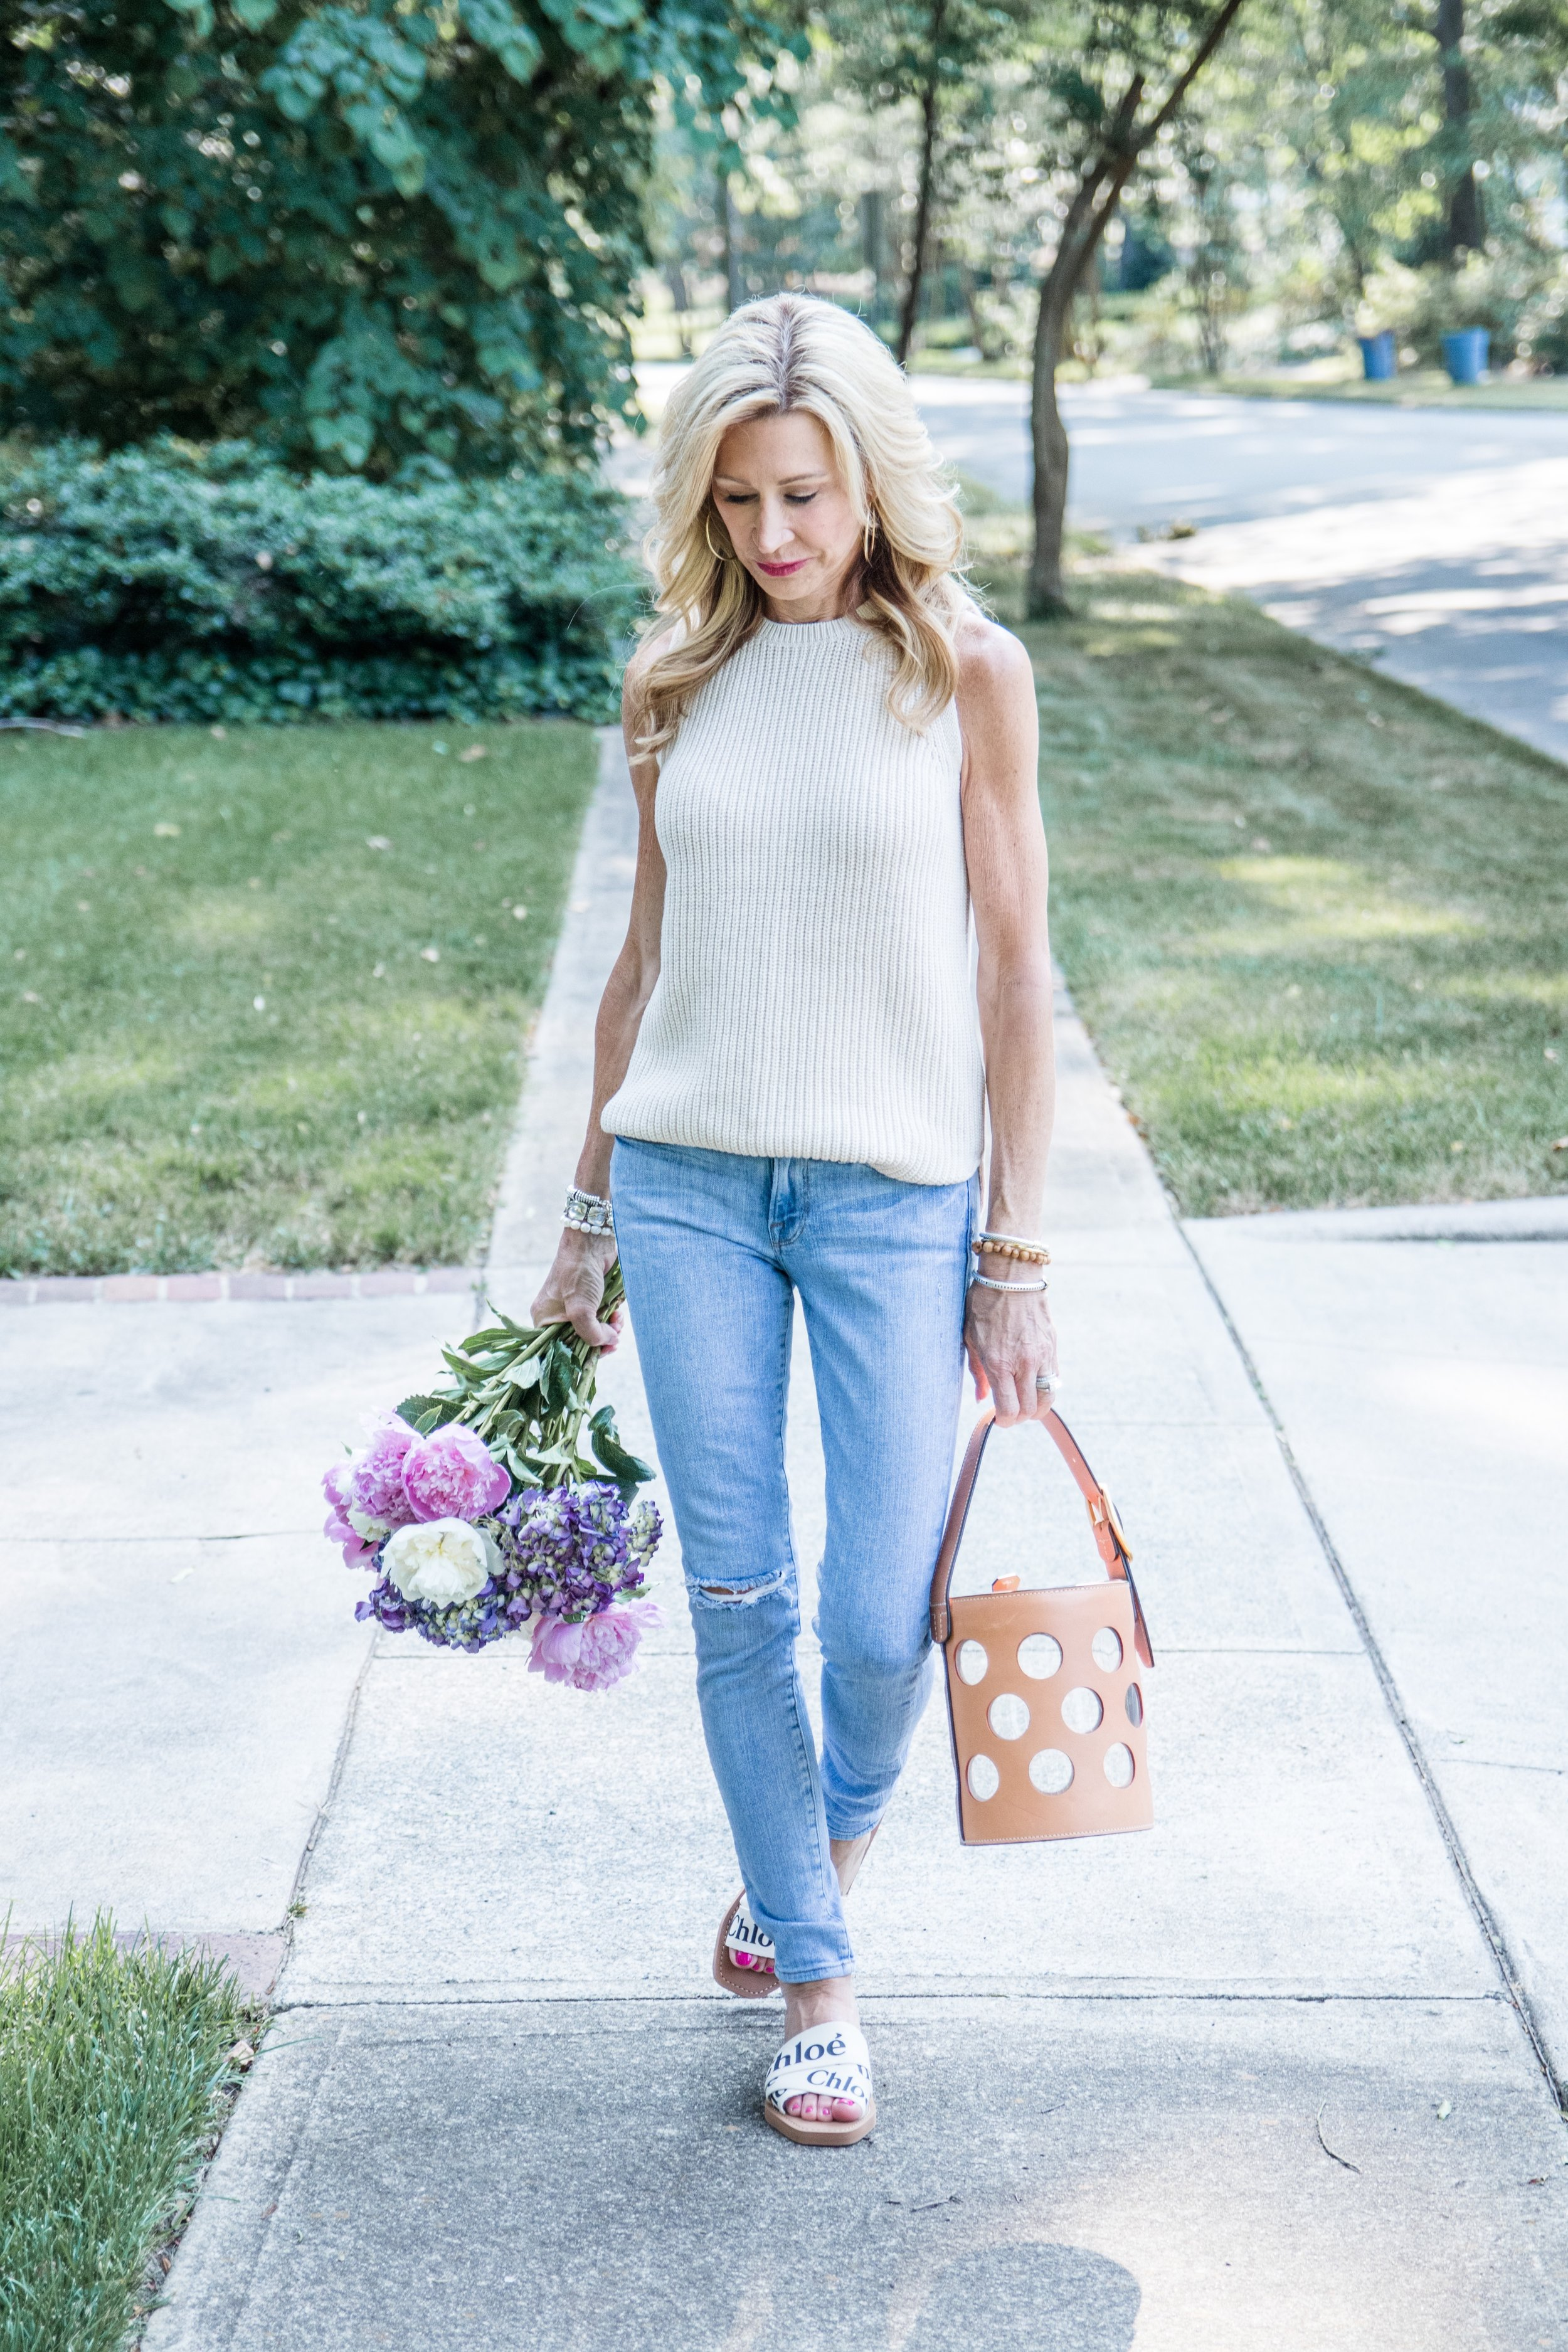 Loft sweater, Frame denim jeans, Tory Burch bag, chloe sandals - Crazy Blonde Style